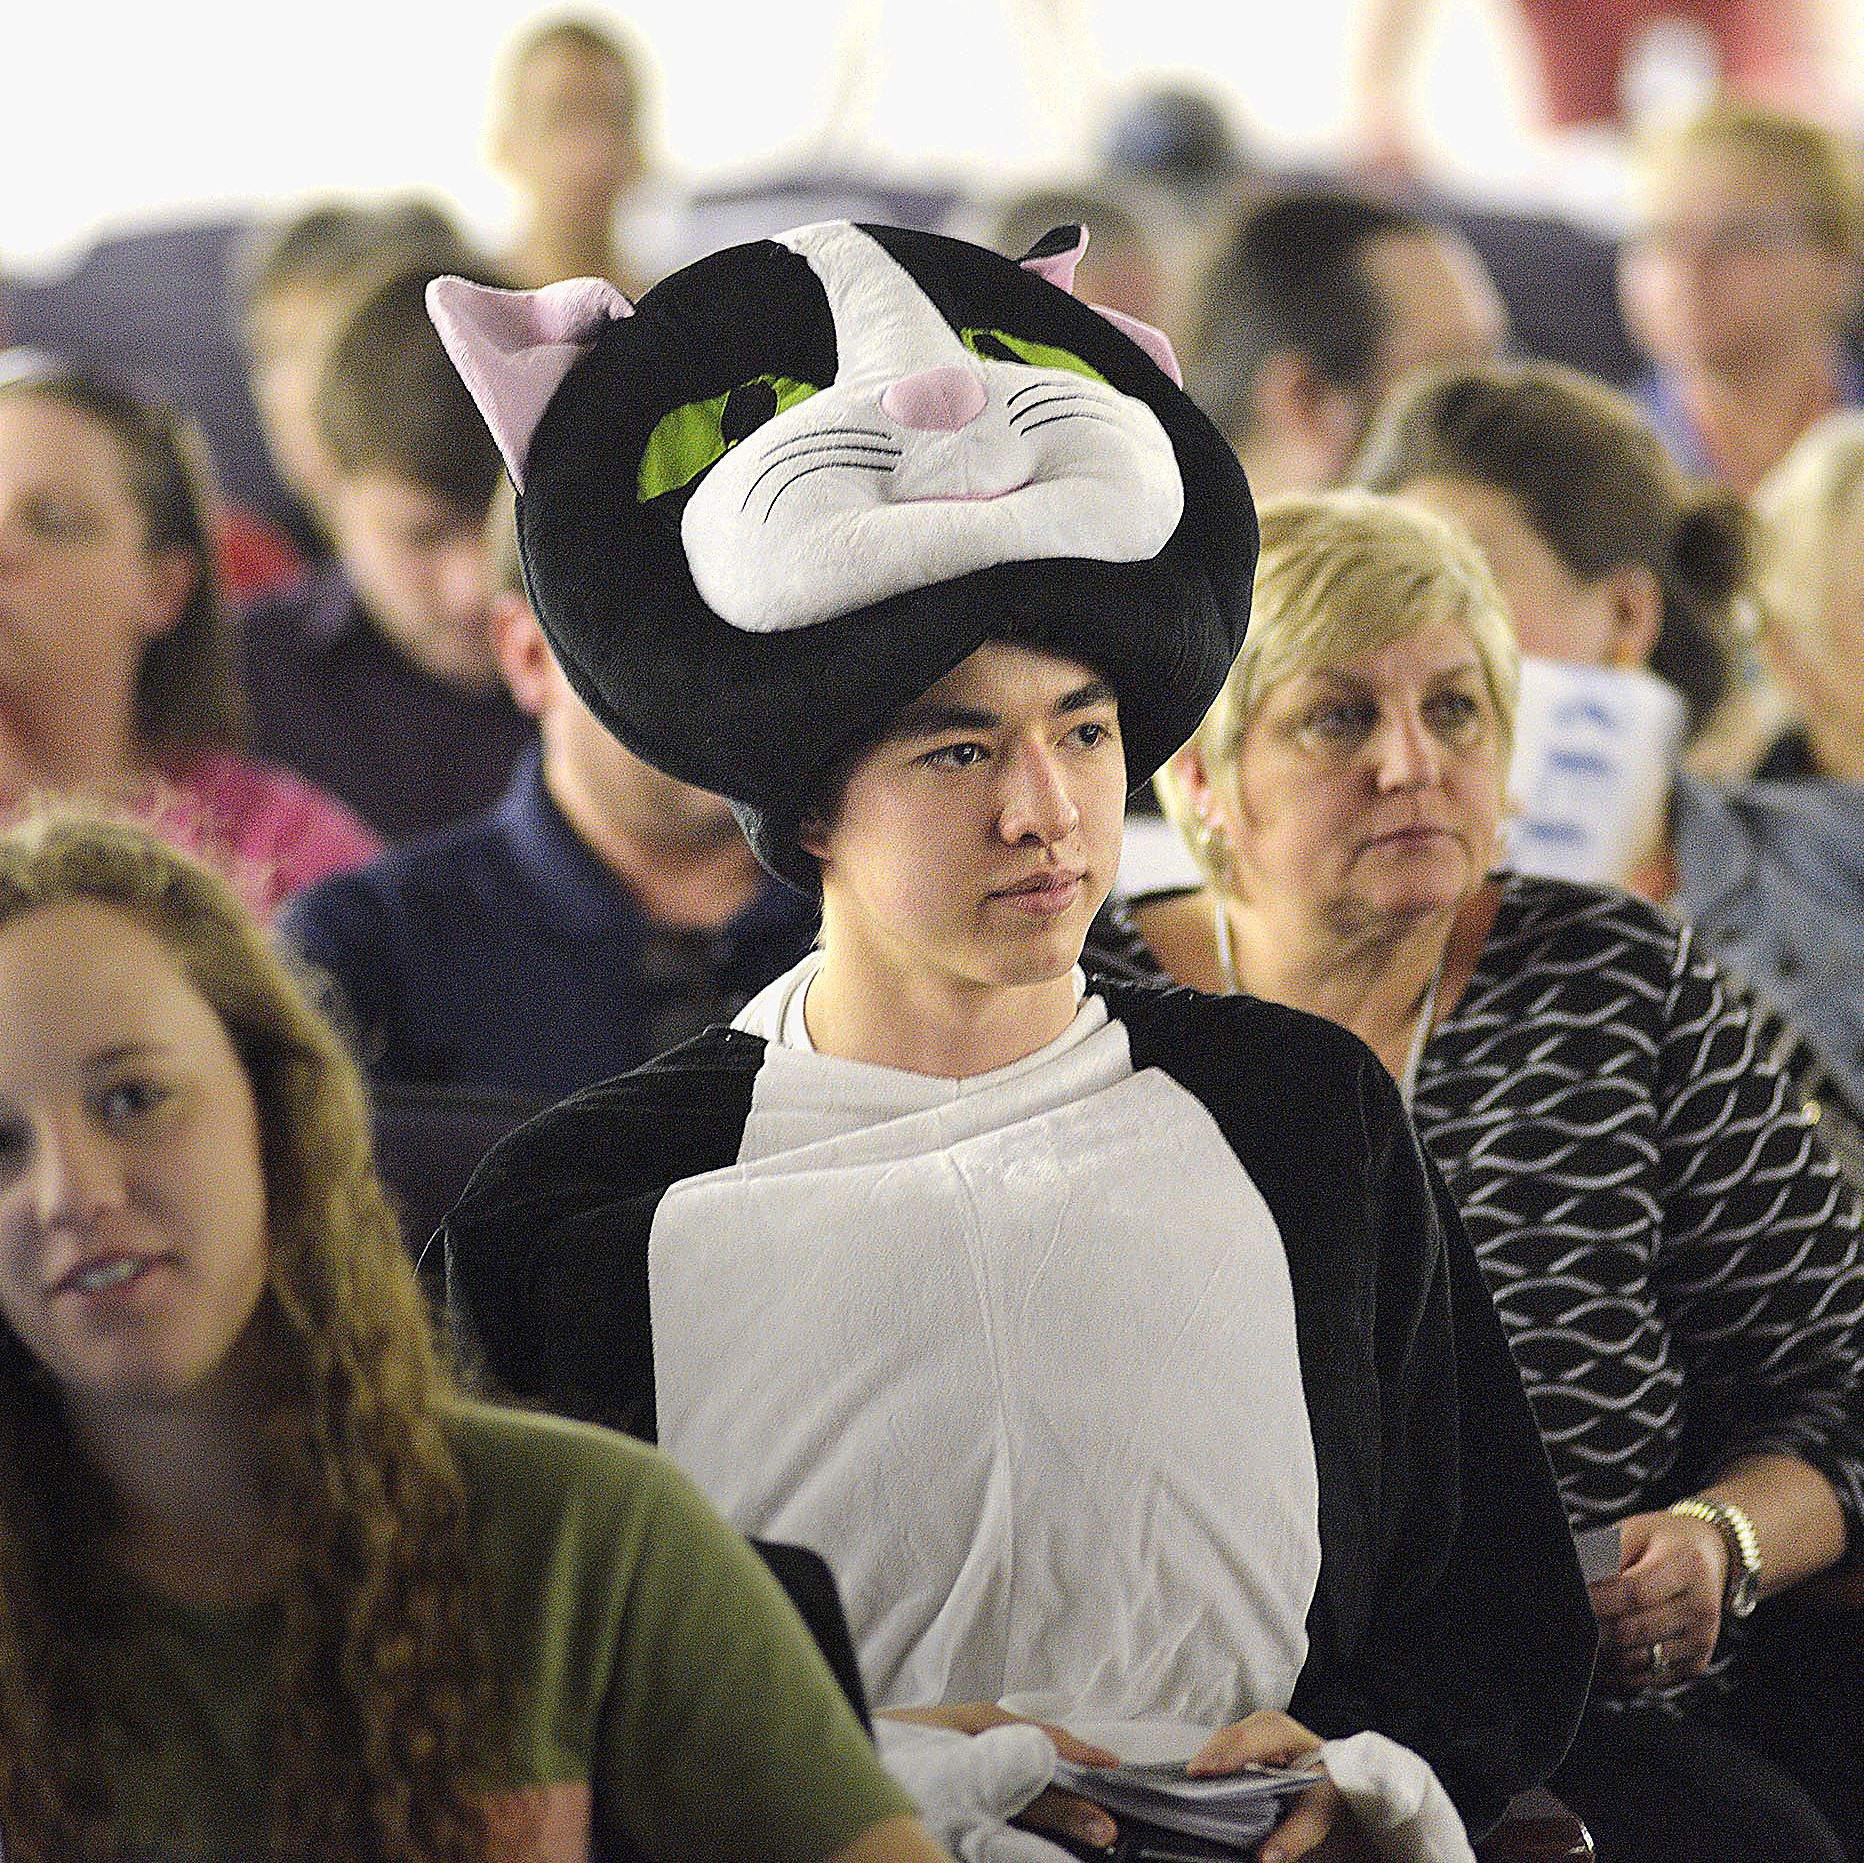 """WEB 20170409lrsencaseytownhall01 Darwin Leuba, of O'Hara, and a member of Yinzers Against Jagoffs, waits in his suit for the town hall to begin. Mr. Leuba described the costume as Republican Sen. Pat Toomey as """"Senator Scaredy Pat, the Washington Fat Cat."""""""